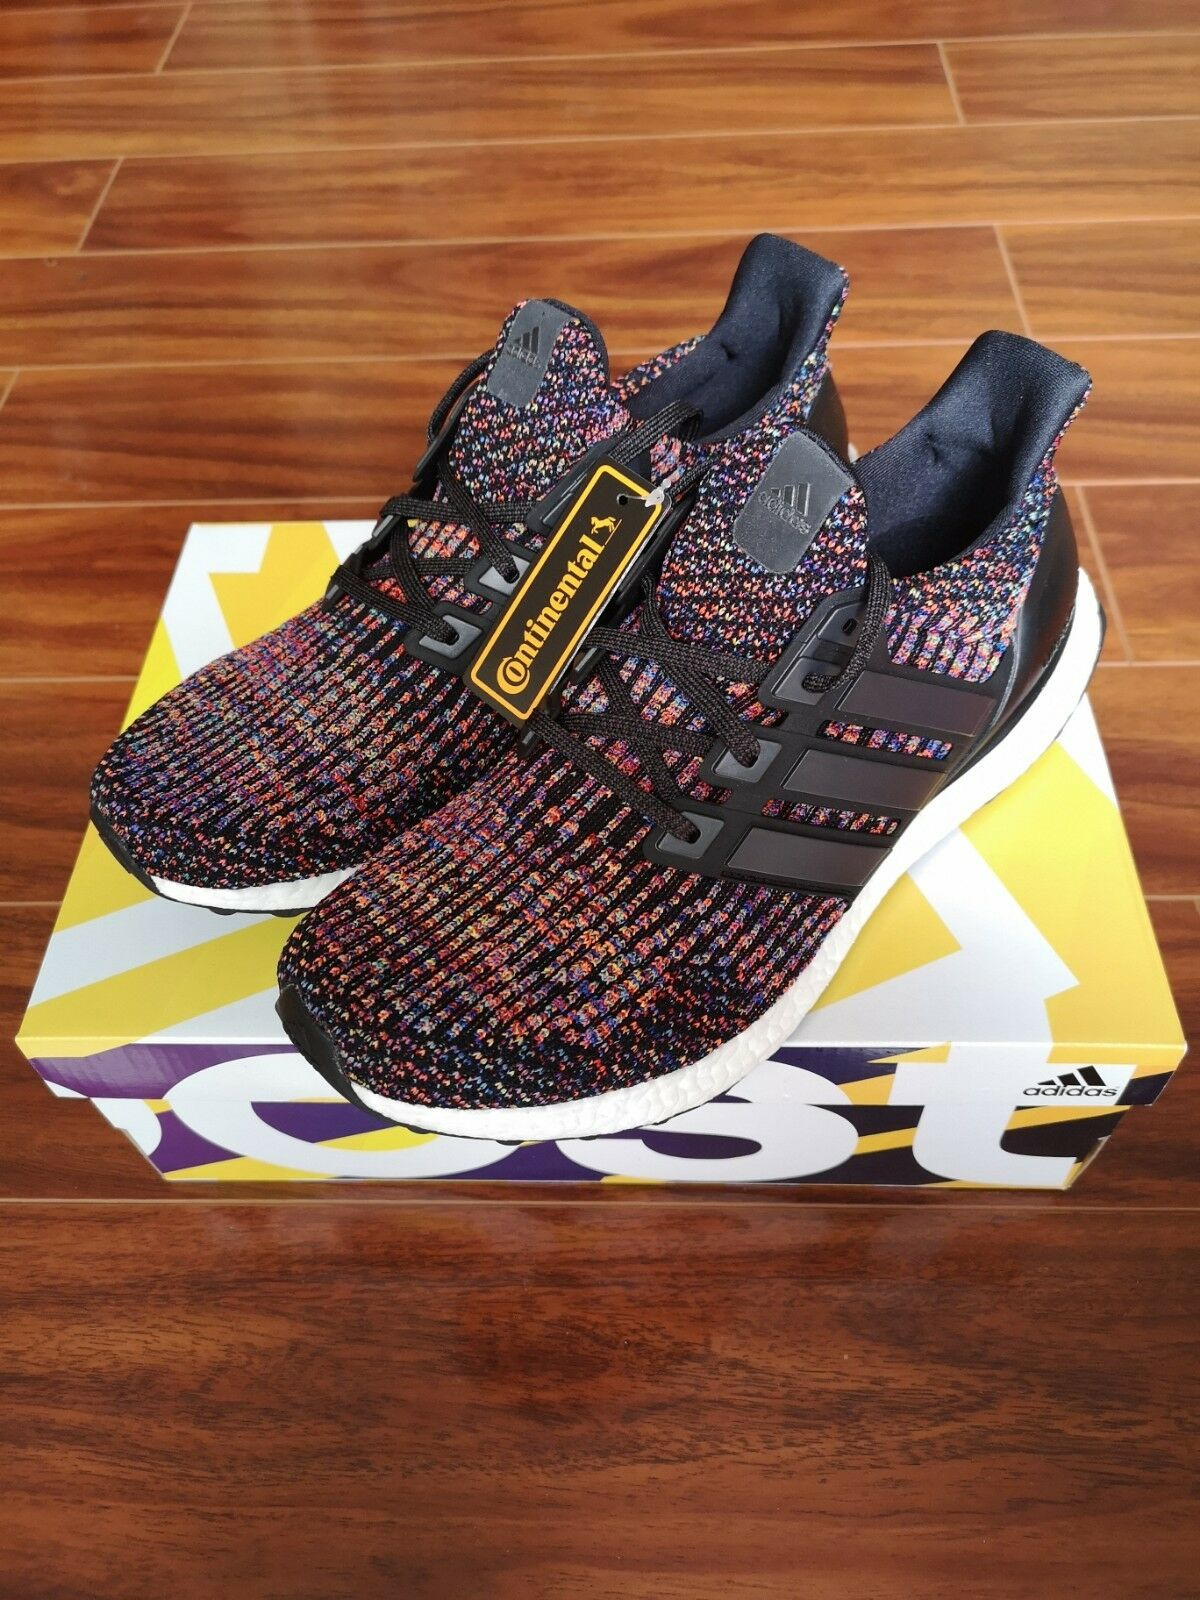 Adidas UltraBoost LTD Multicolor LTD Men's Size 9 with Box